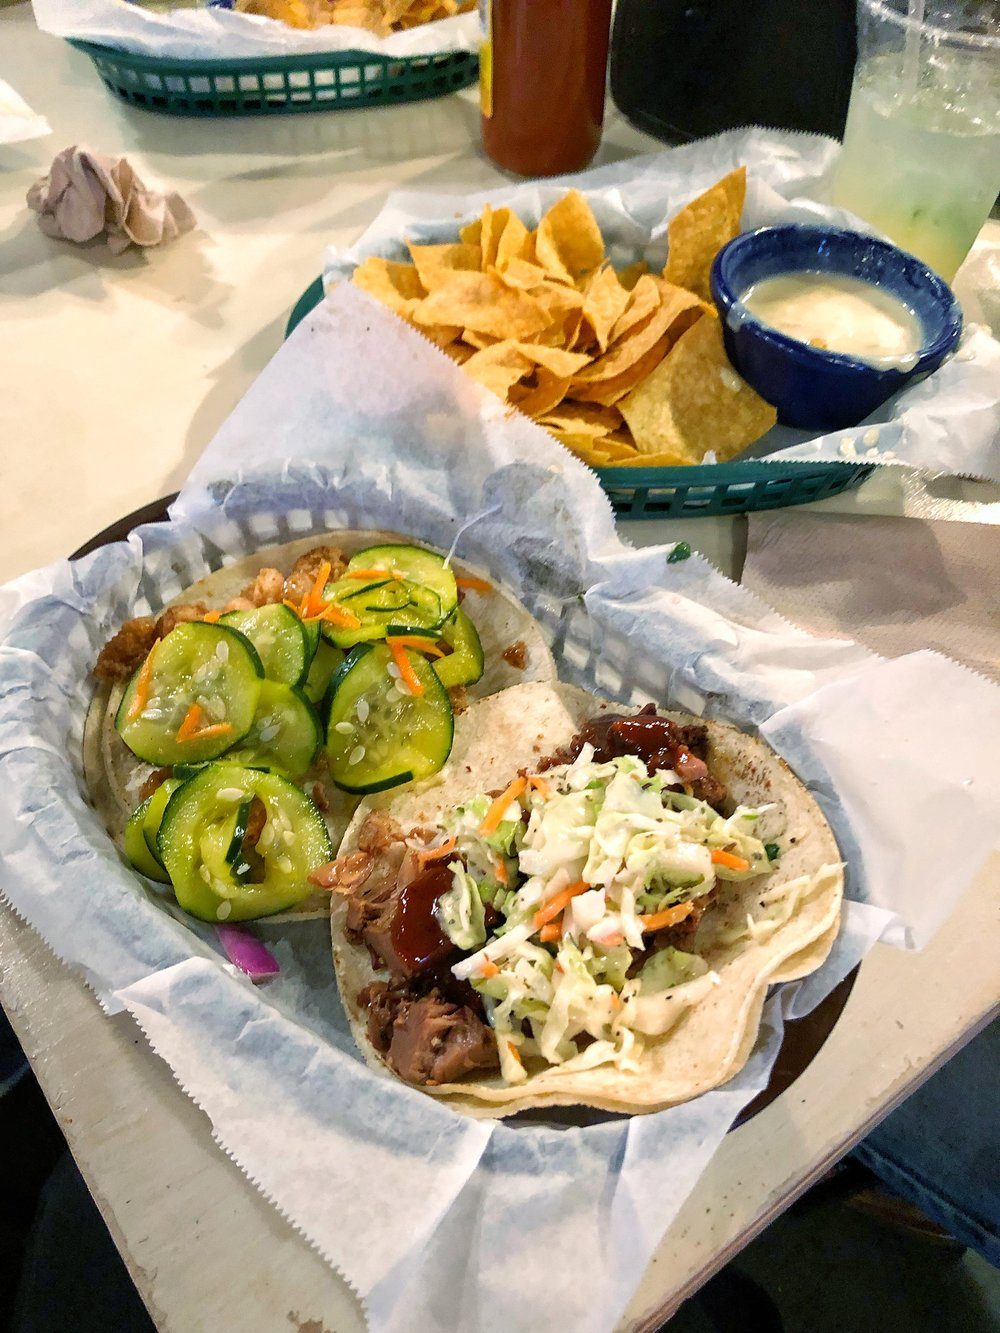 Woke up early this weekend to visit Greenville, had a small-ish lunch before a going to a talk, so I was pretty significantly meal hungry by 5. Ate these tacos from White Duck (Bangkok shrimp with pickled cucumbers, BBQ jackfruit with beans and slaw), plus most of the chips with queso.